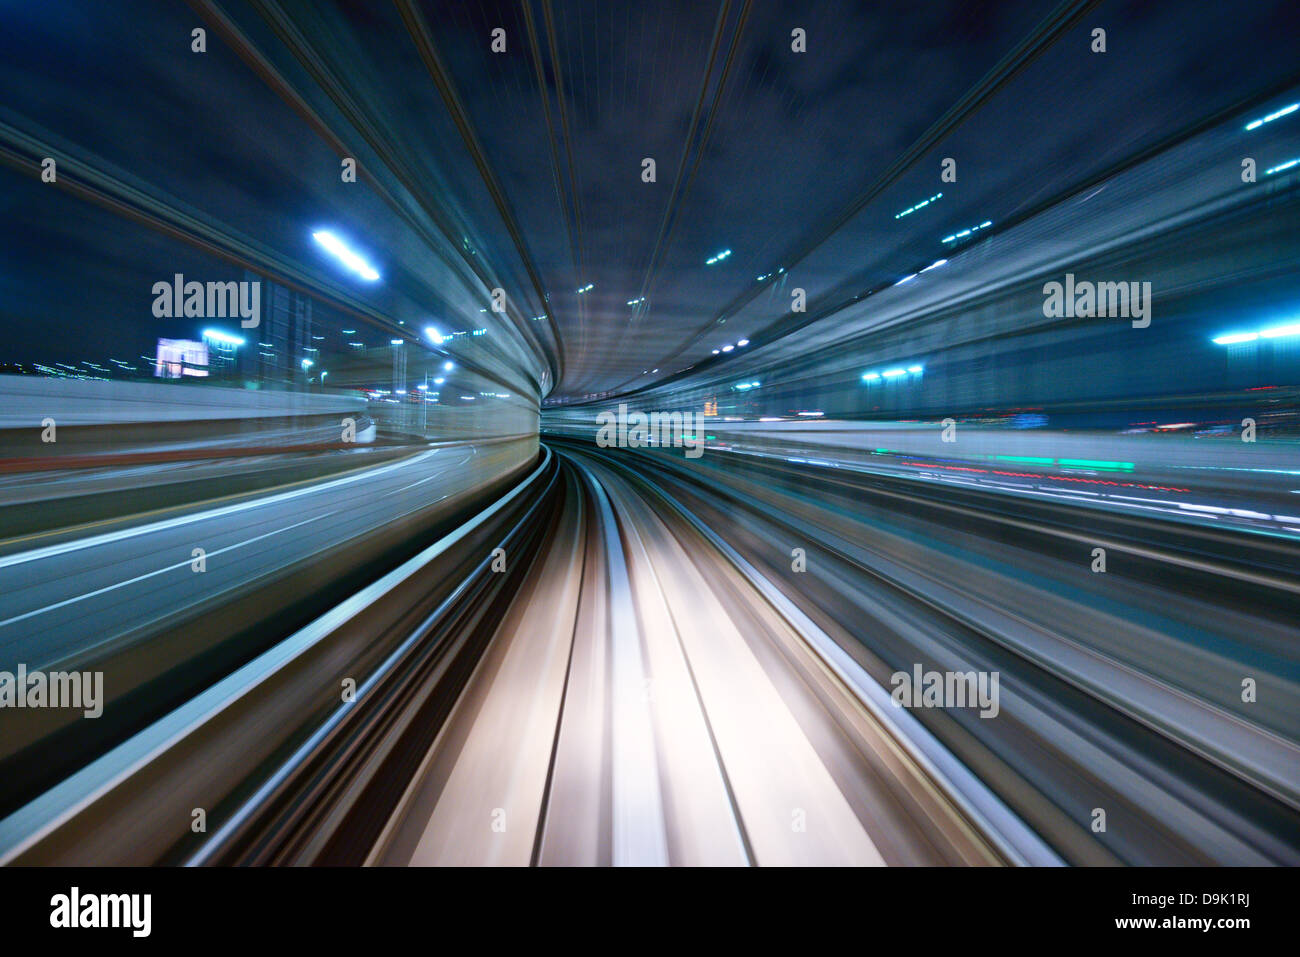 Motion blur of a city and tunnel from inside a moving monorail in Tokyo. - Stock Image